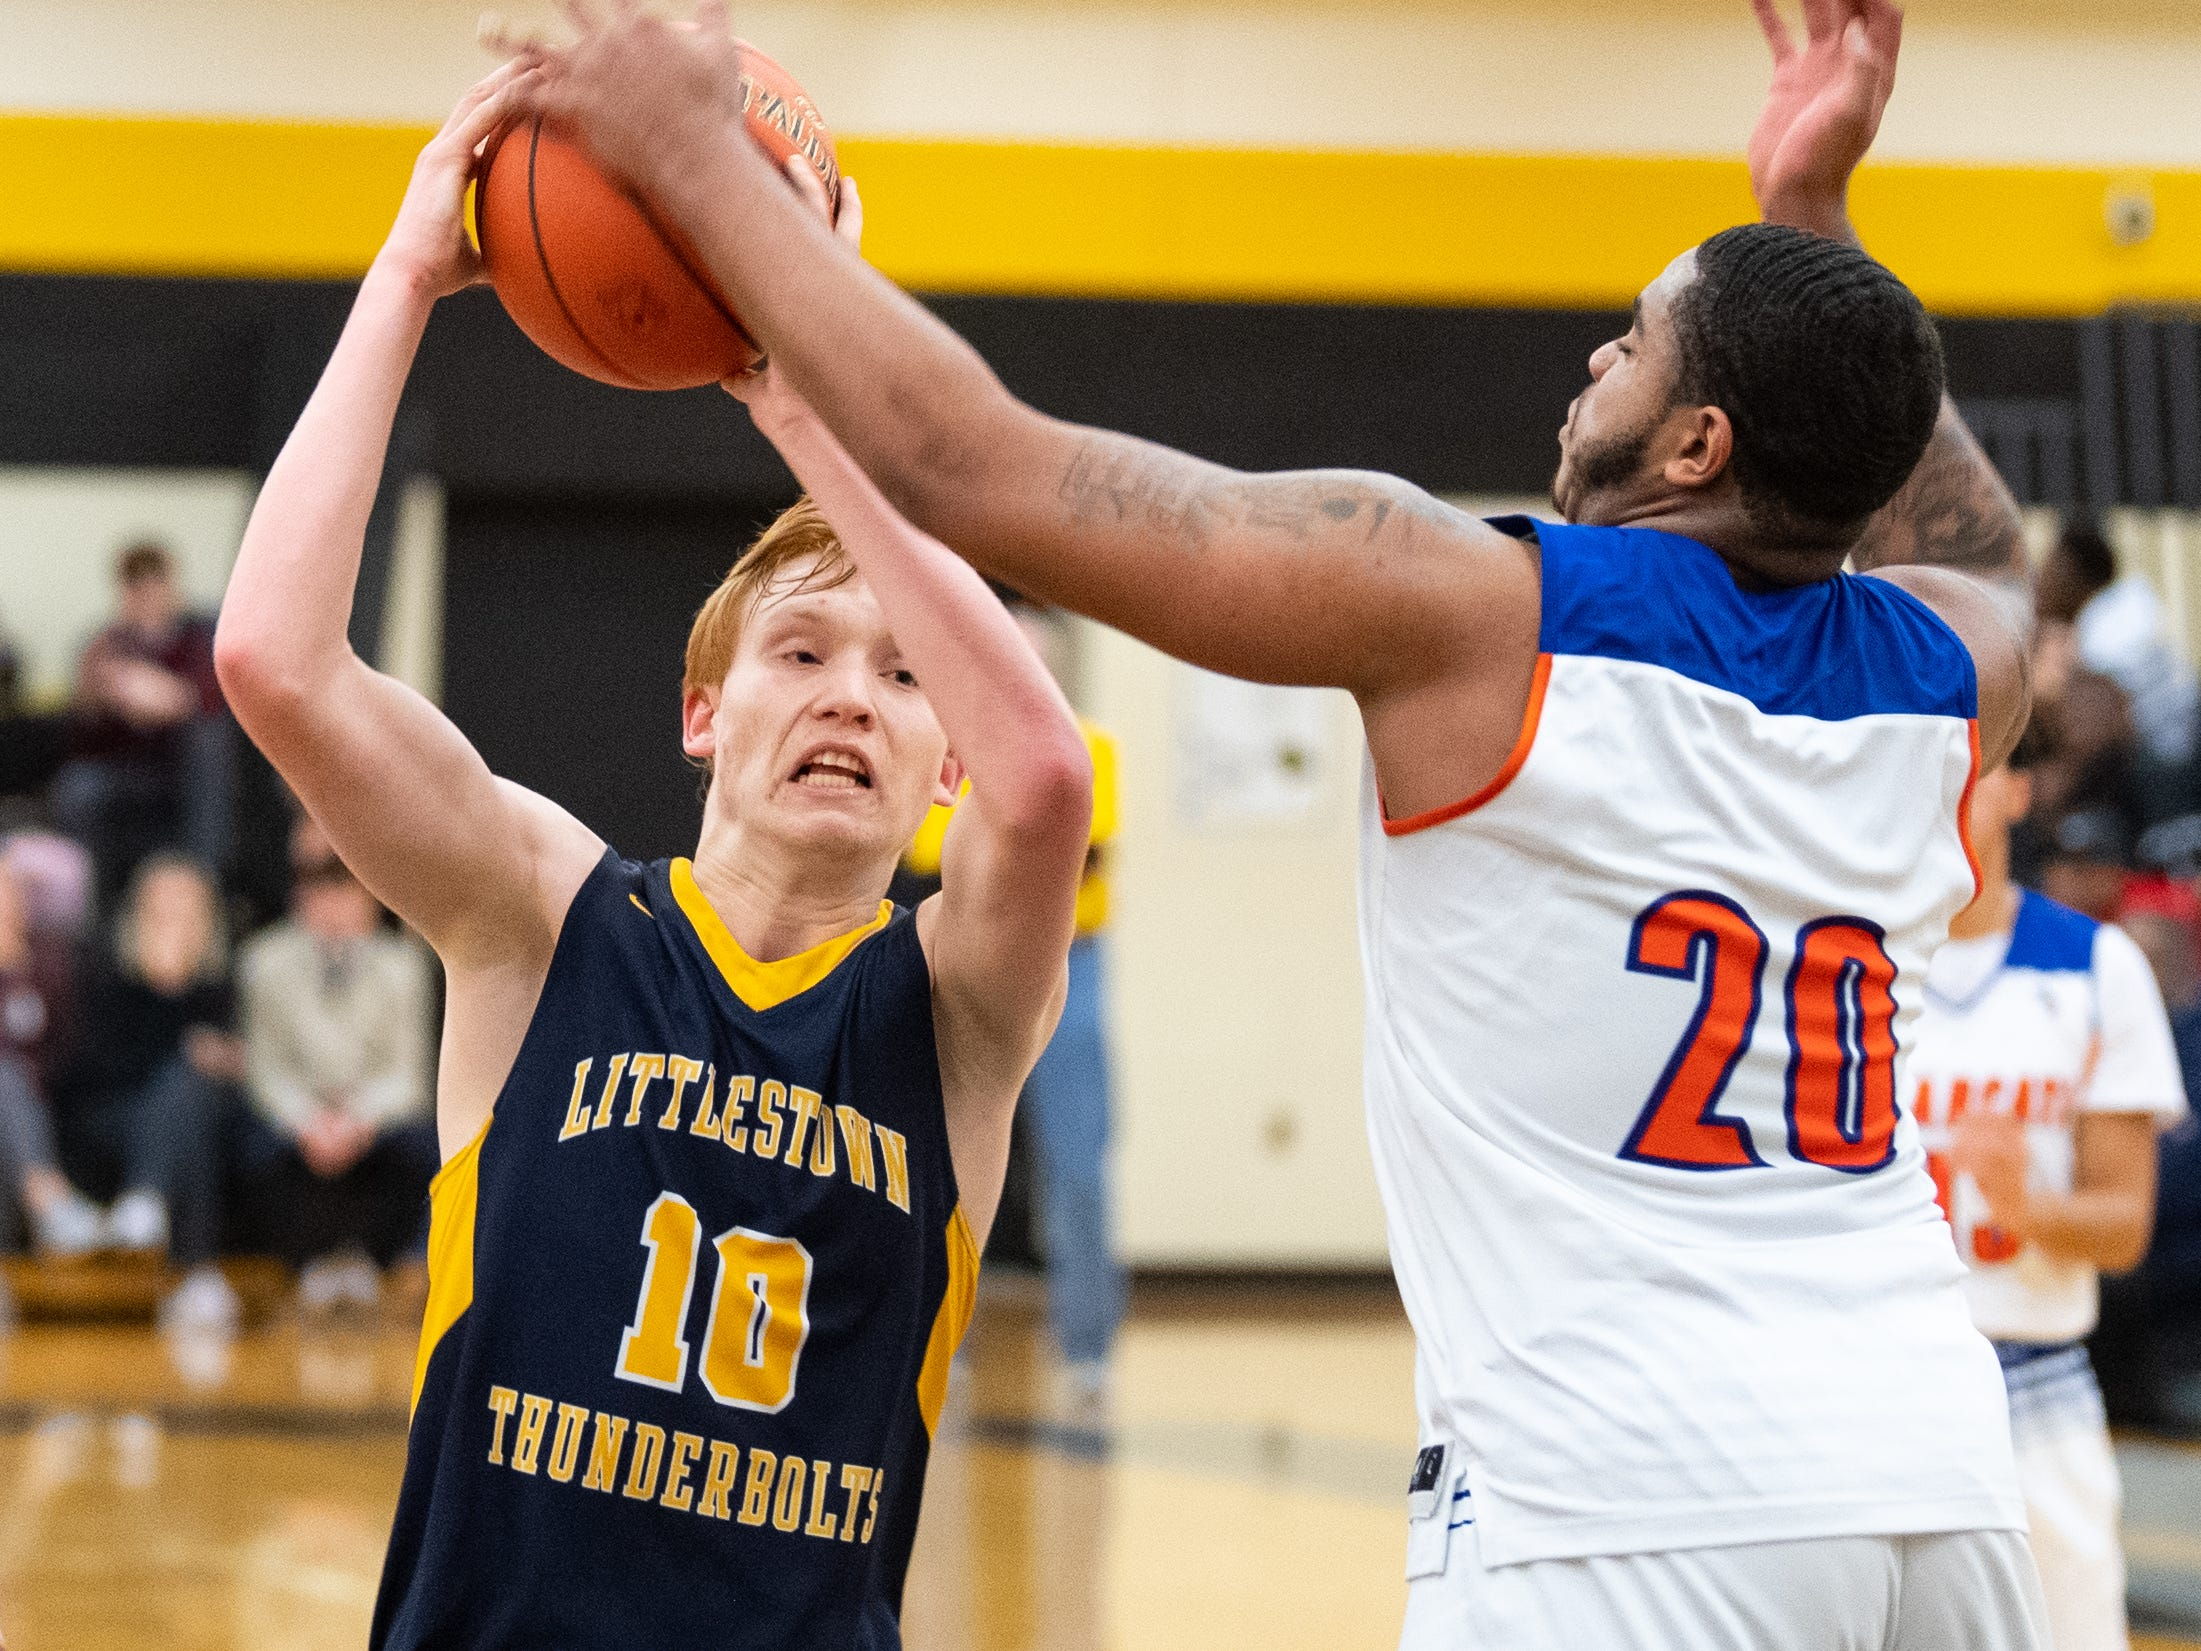 Littlestown's Dan Gazemen (10) is blocked by Marquise McClean (20) of York High during the YAIAA boys' basketball semifinals between York High and Littlestown, Wednesday, February 13, 2019 at Red Lion Area High School. The Bearcats defeated the Thunderbolts 74 to 51.